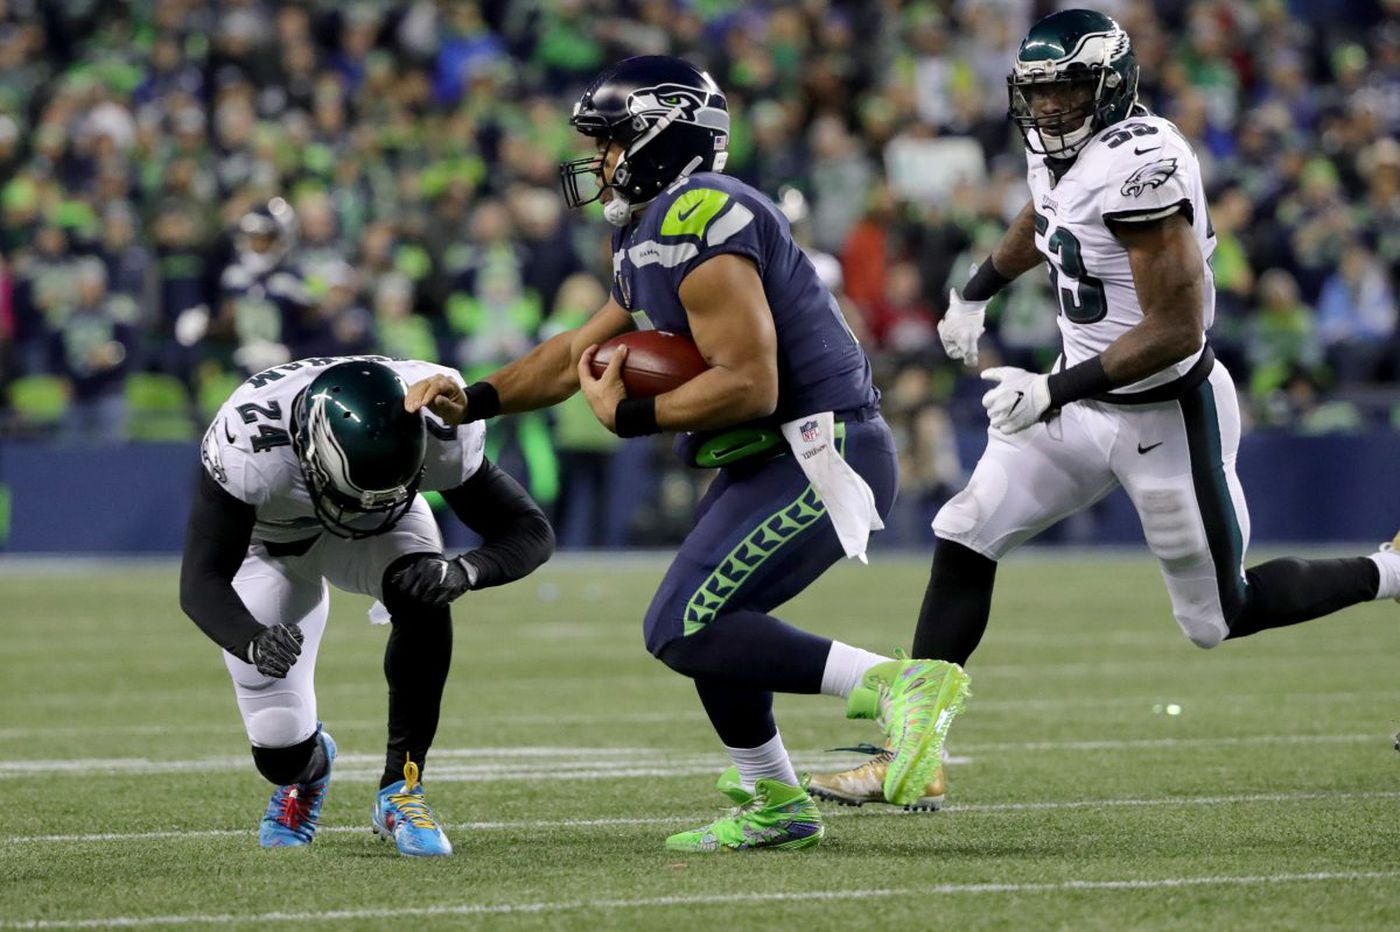 Eagles' Carson Wentz can't match Seahawks' Russell Wilson as crucial turnover seals Eagles' fate